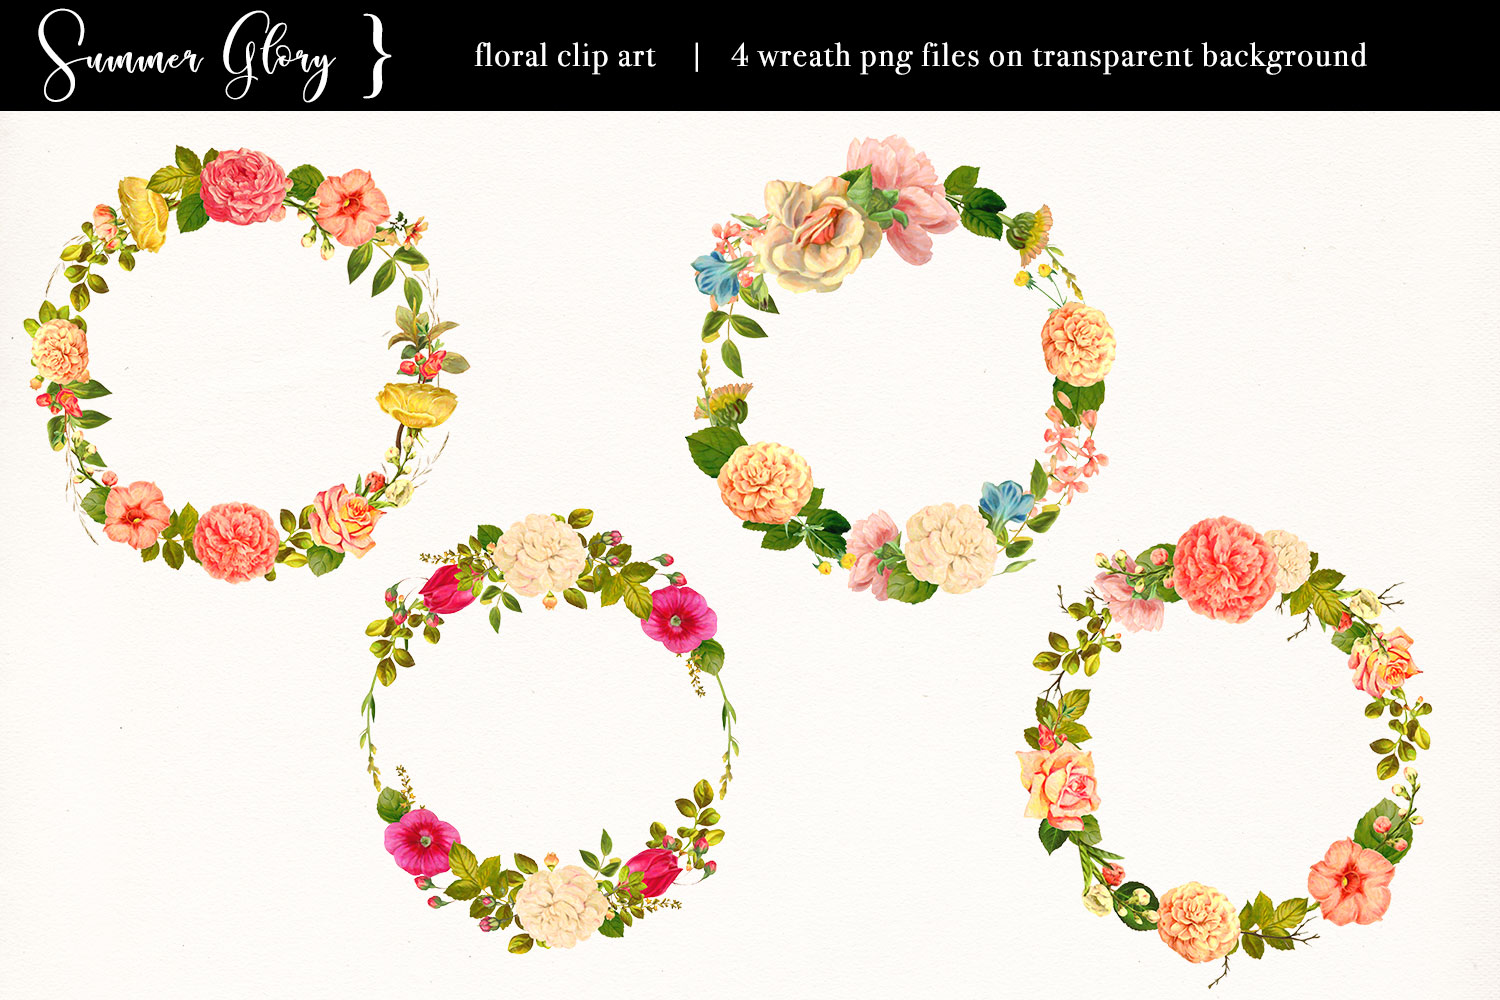 Floral Clip Art - Summer Glory example image 4